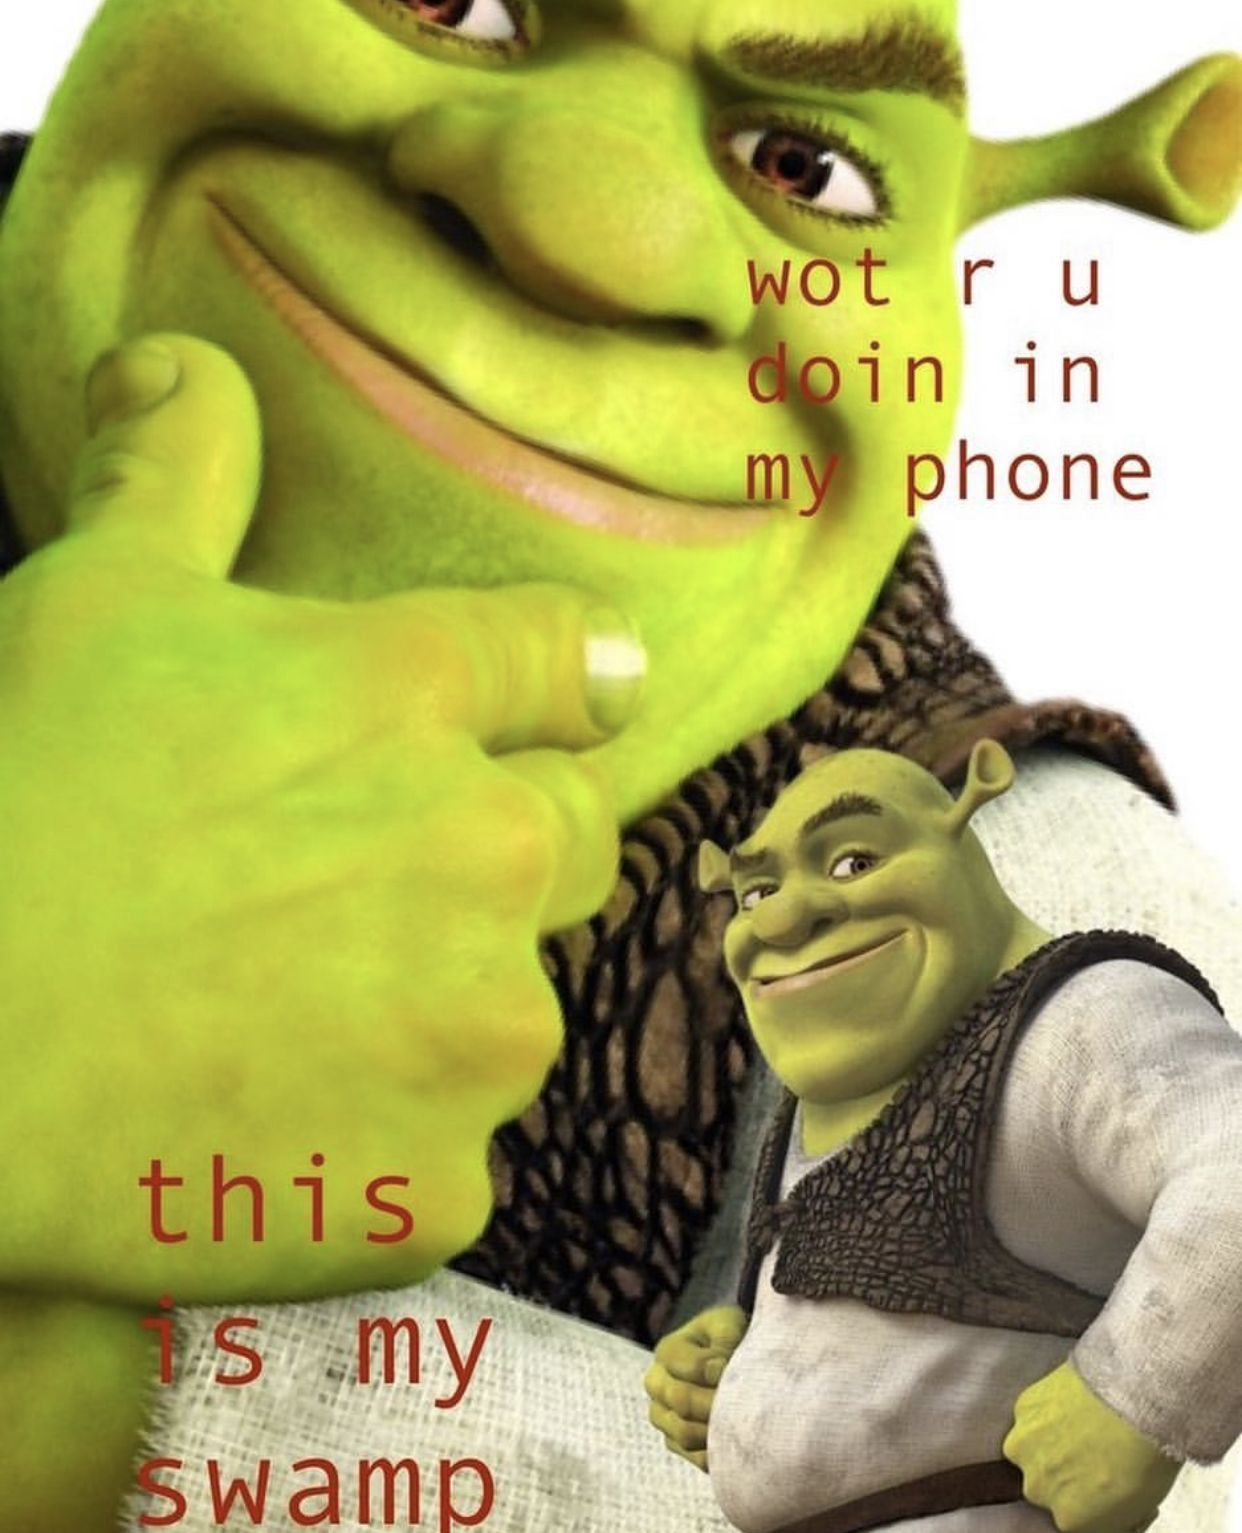 Shrek Memes Wallpapers Top Free Shrek Memes Backgrounds Wallpaperaccess